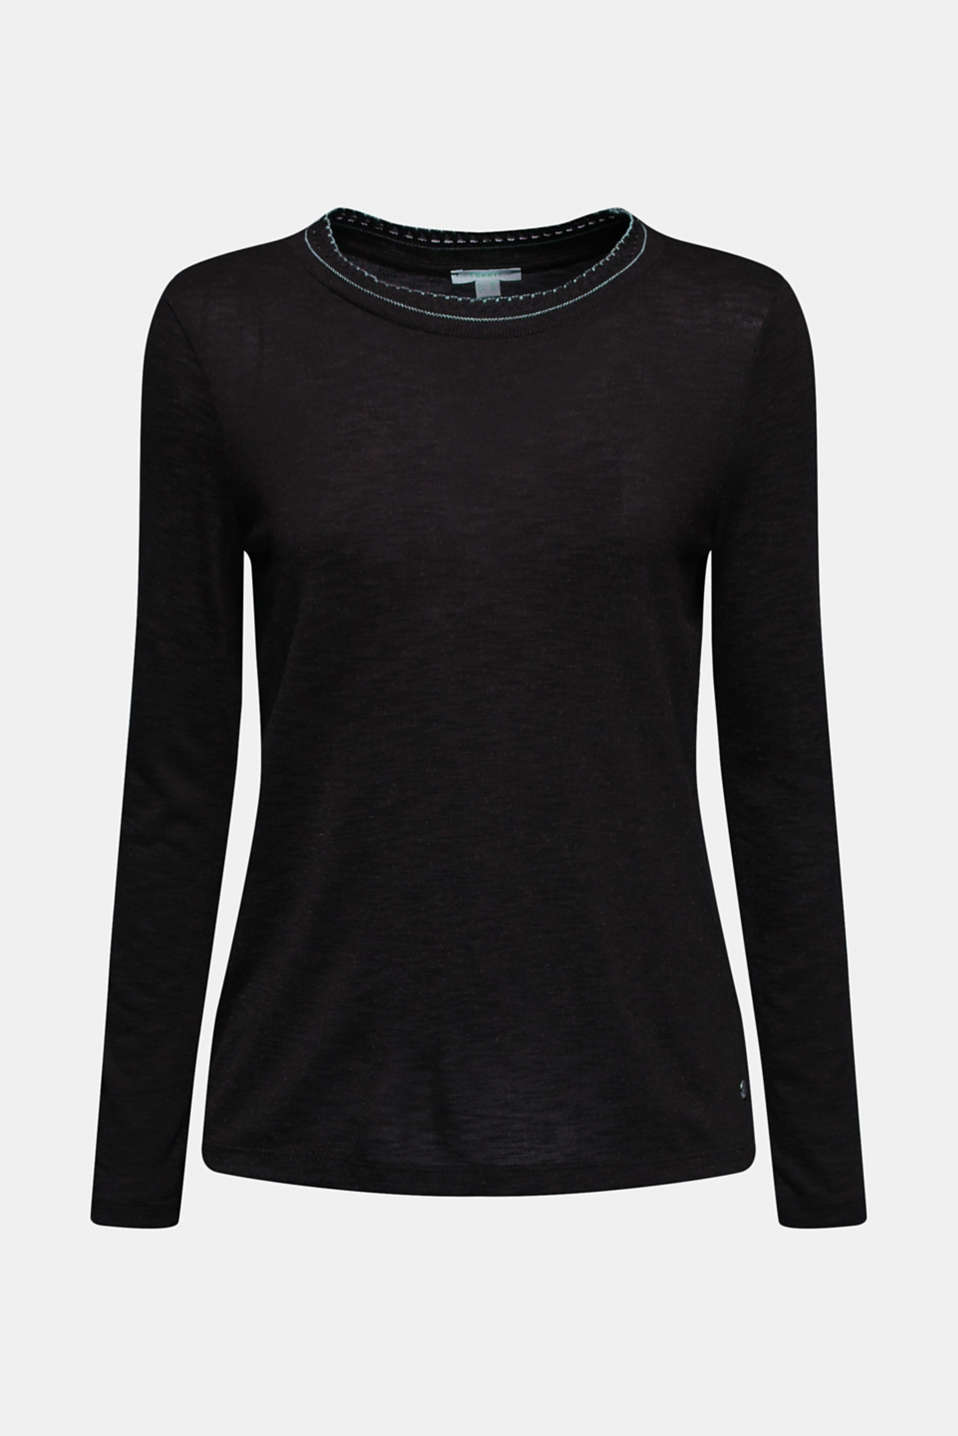 Textured long sleeve top with a crocheted collar, BLACK, detail image number 6